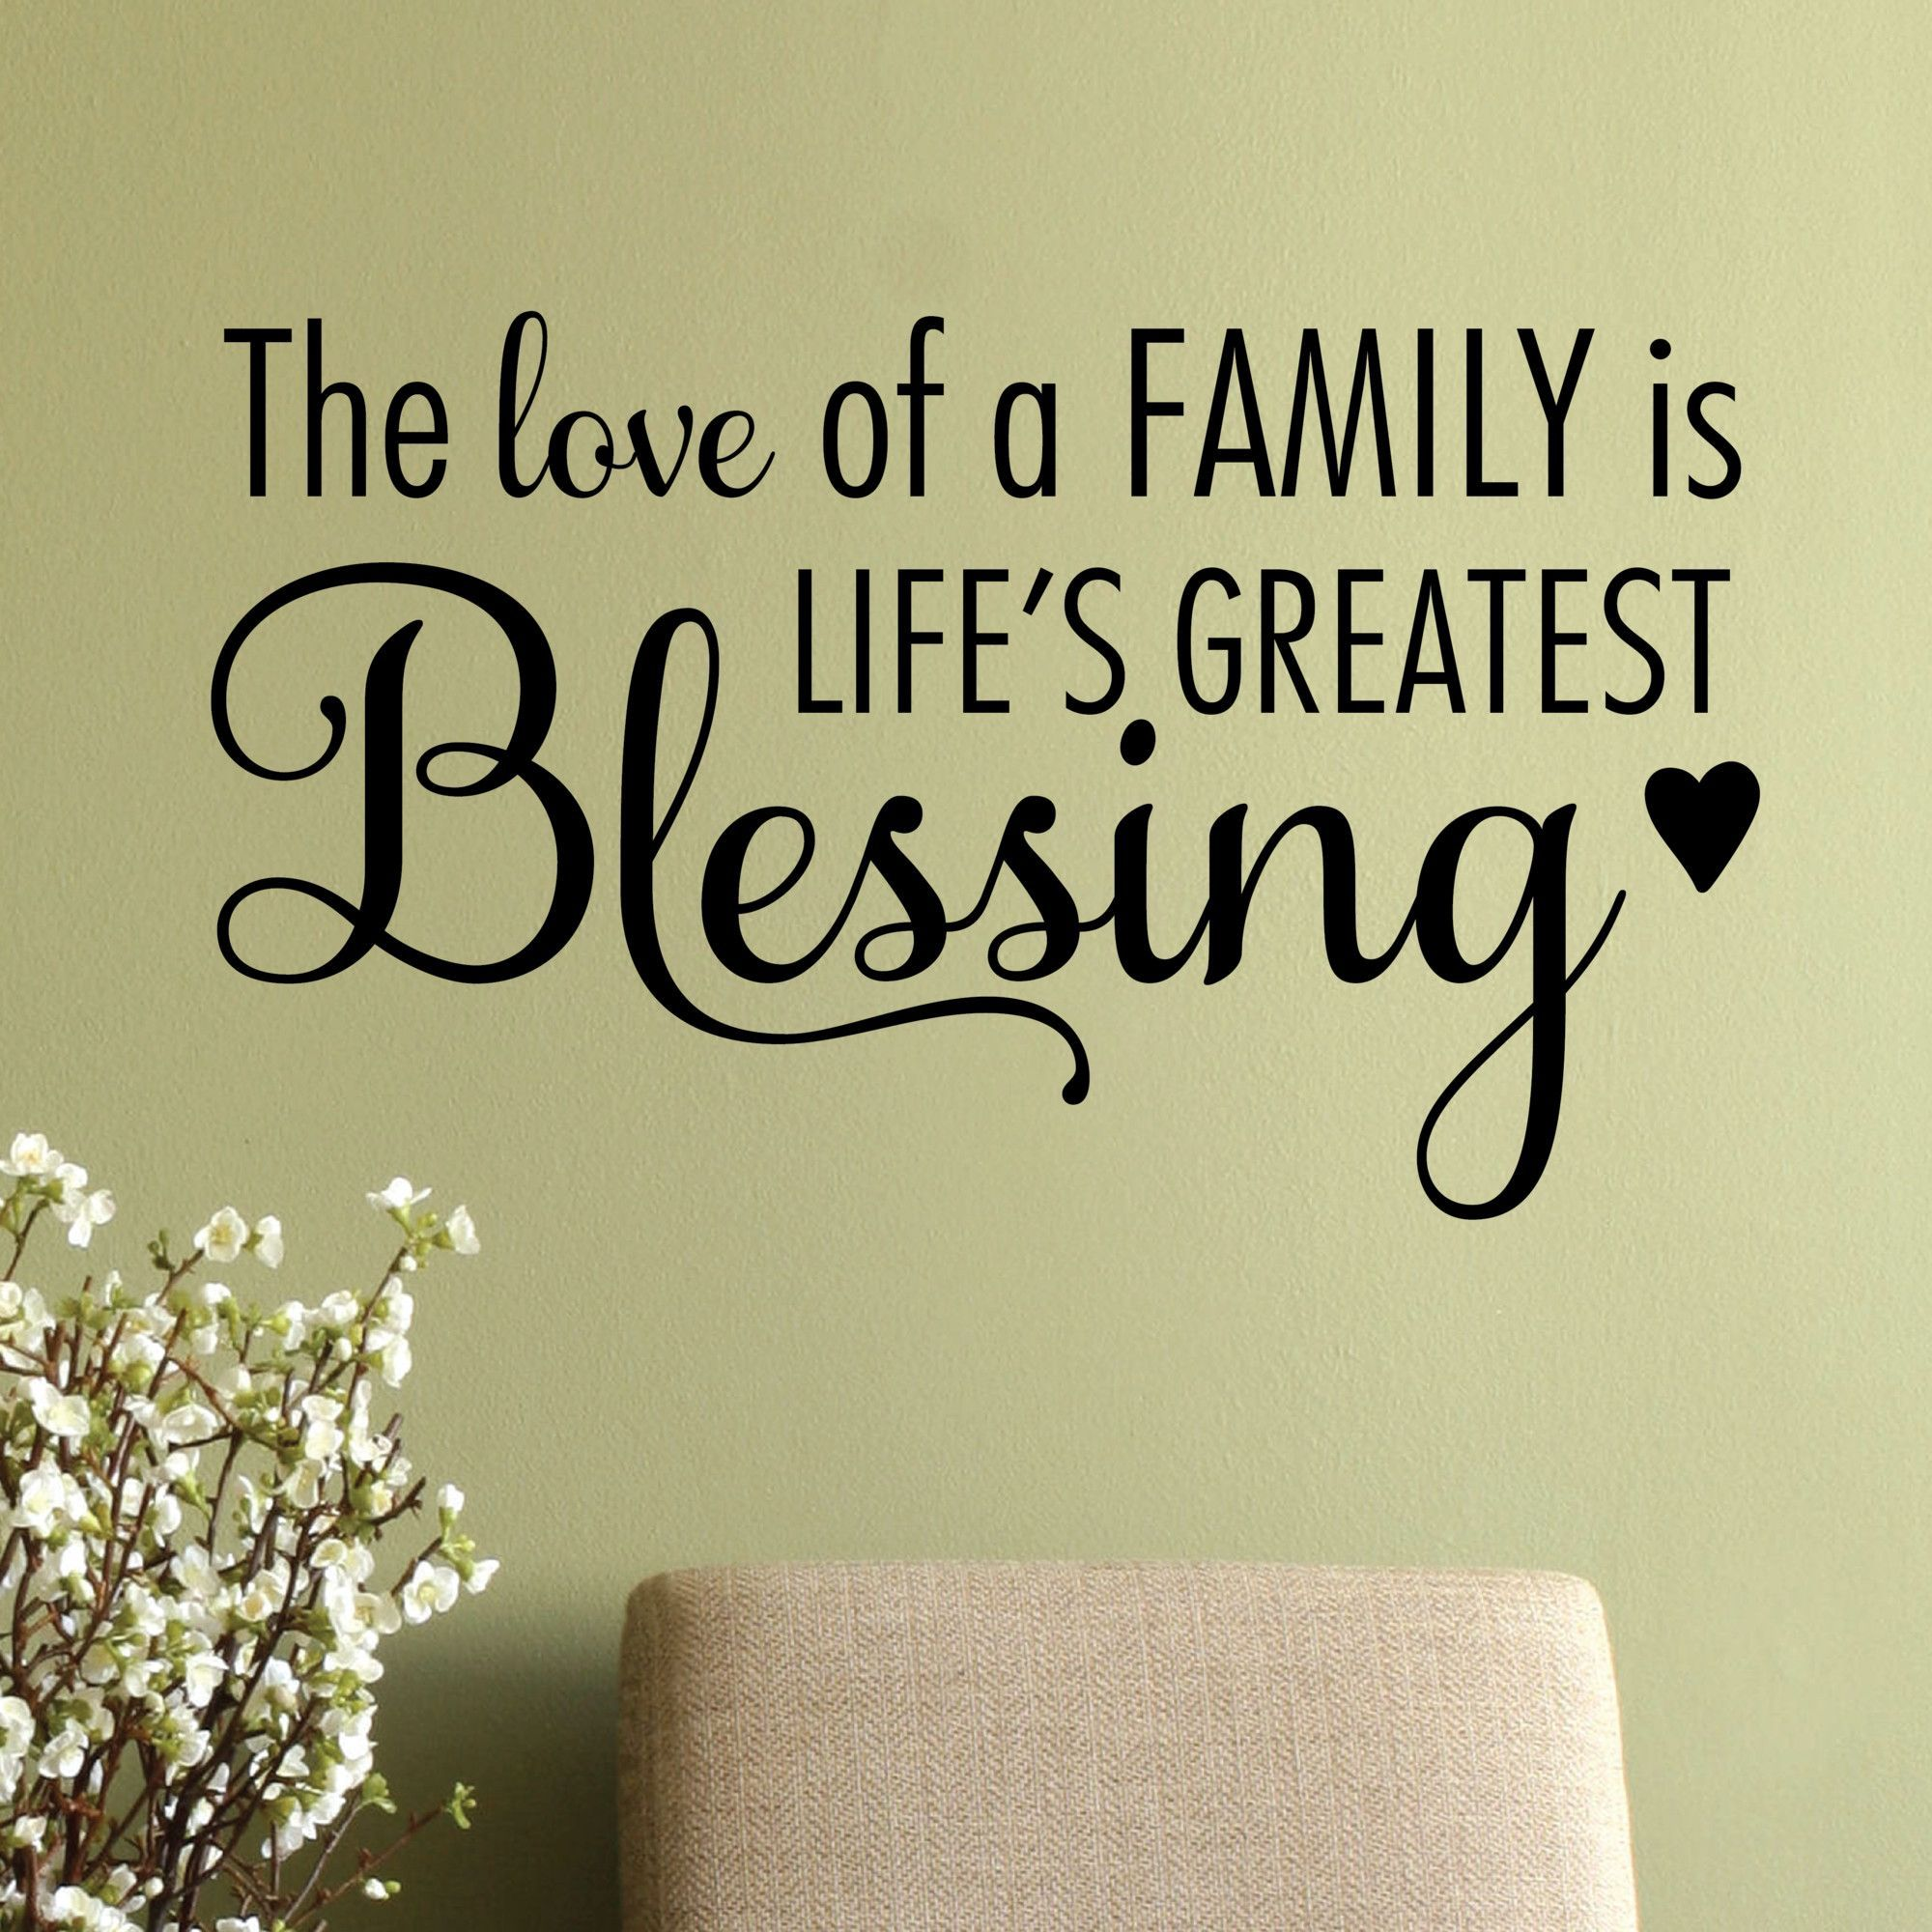 Family Love Quotes Images: Features: -Title: The Love Of A Family Is Lifes Greatest